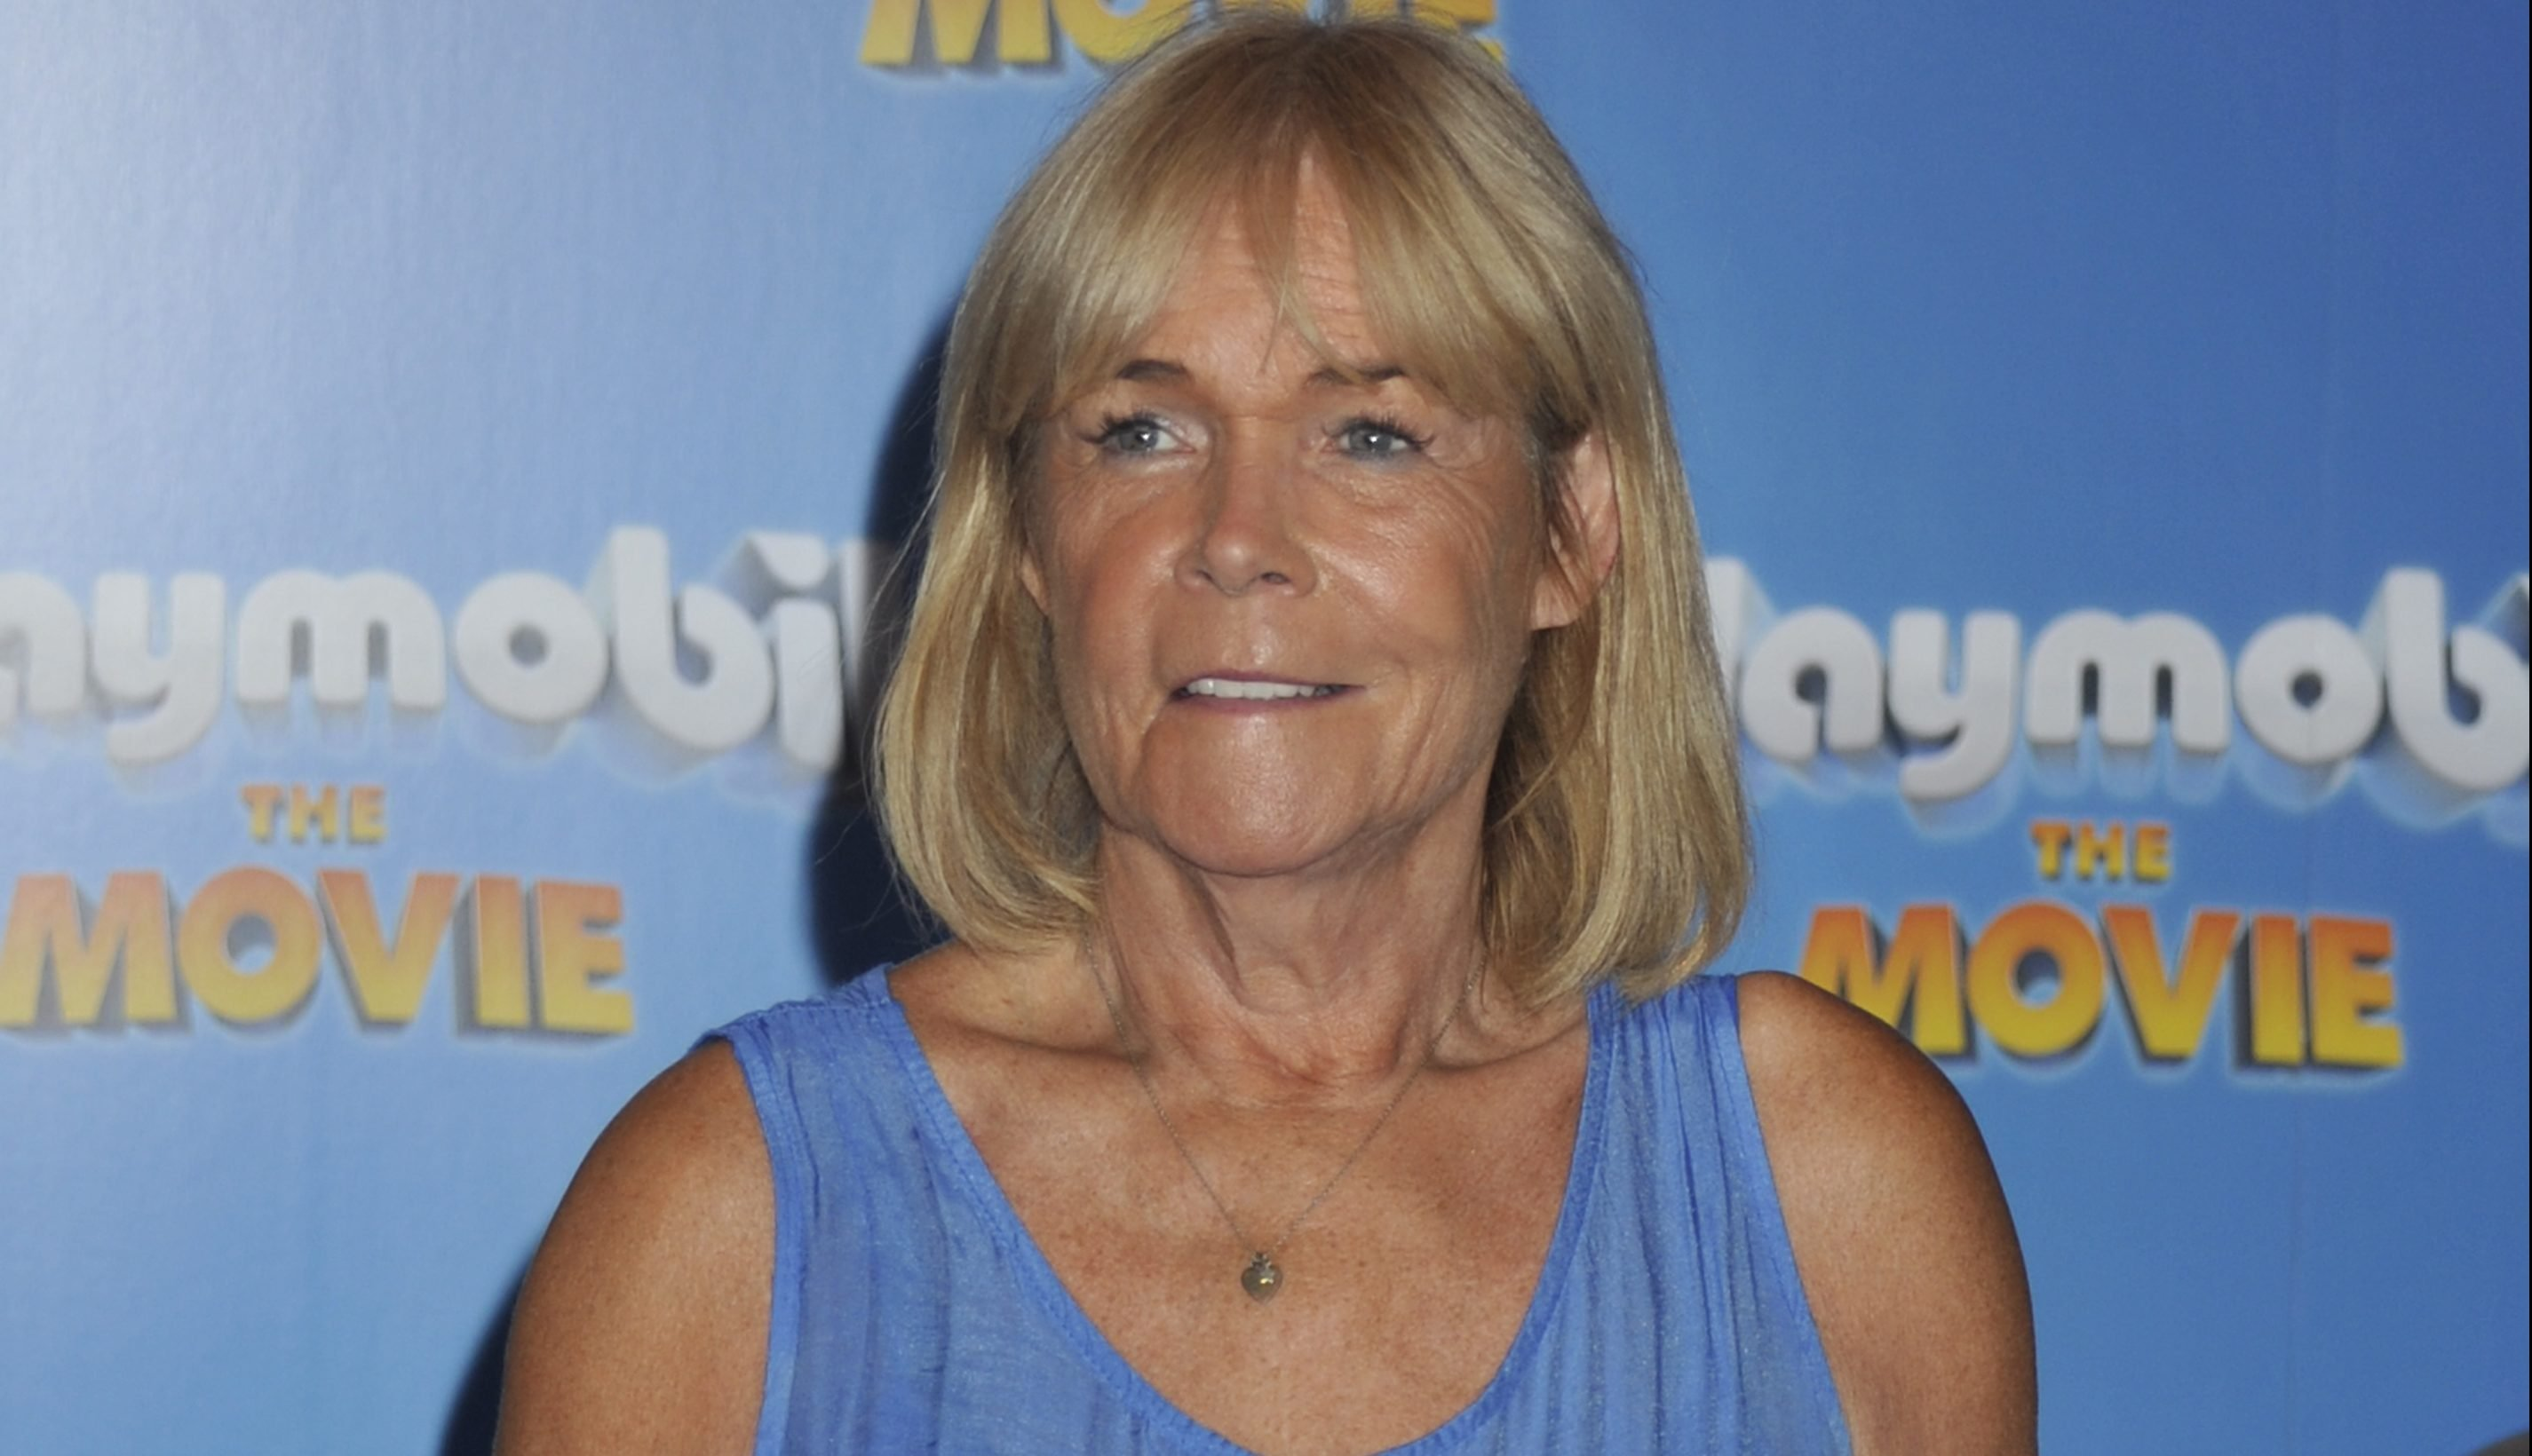 Fans beg for Linda Robson's return as she enjoys Christmas lunch with Loose Women co-stars